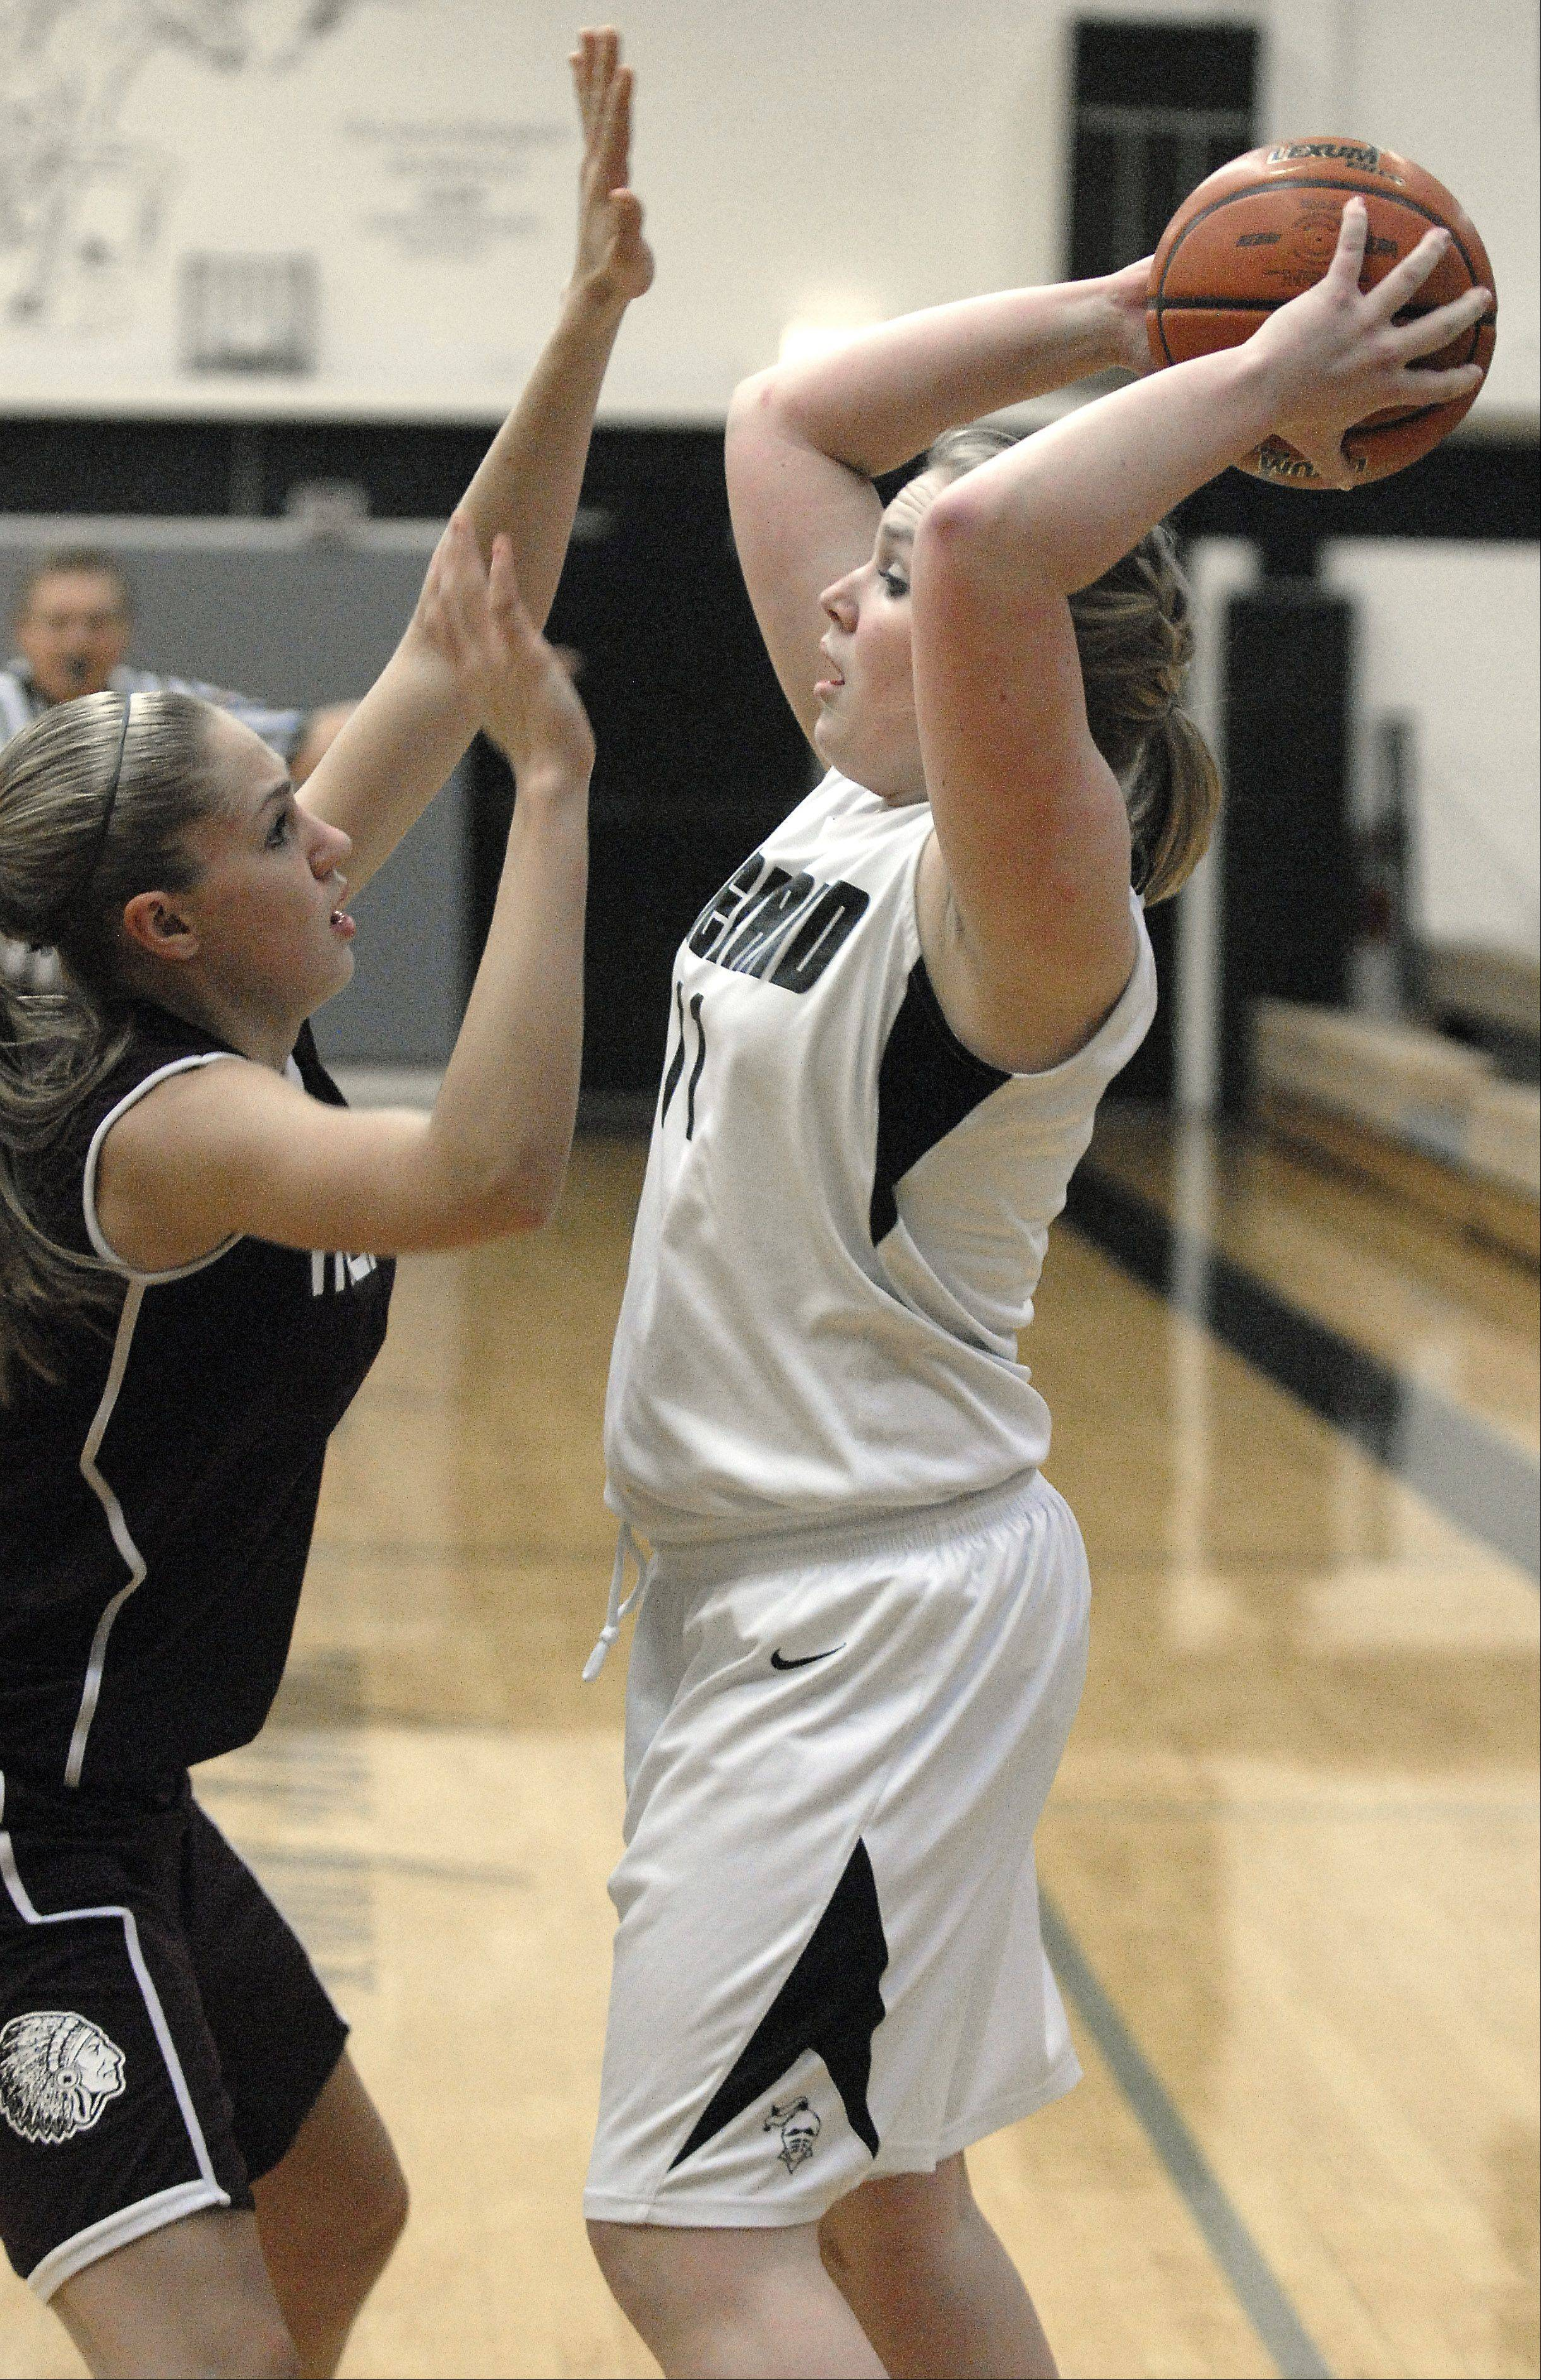 Kaneland's Ashley Post looks to pass around Marengo's Jessica Ville in the first quarter on Tuesday, February 7.